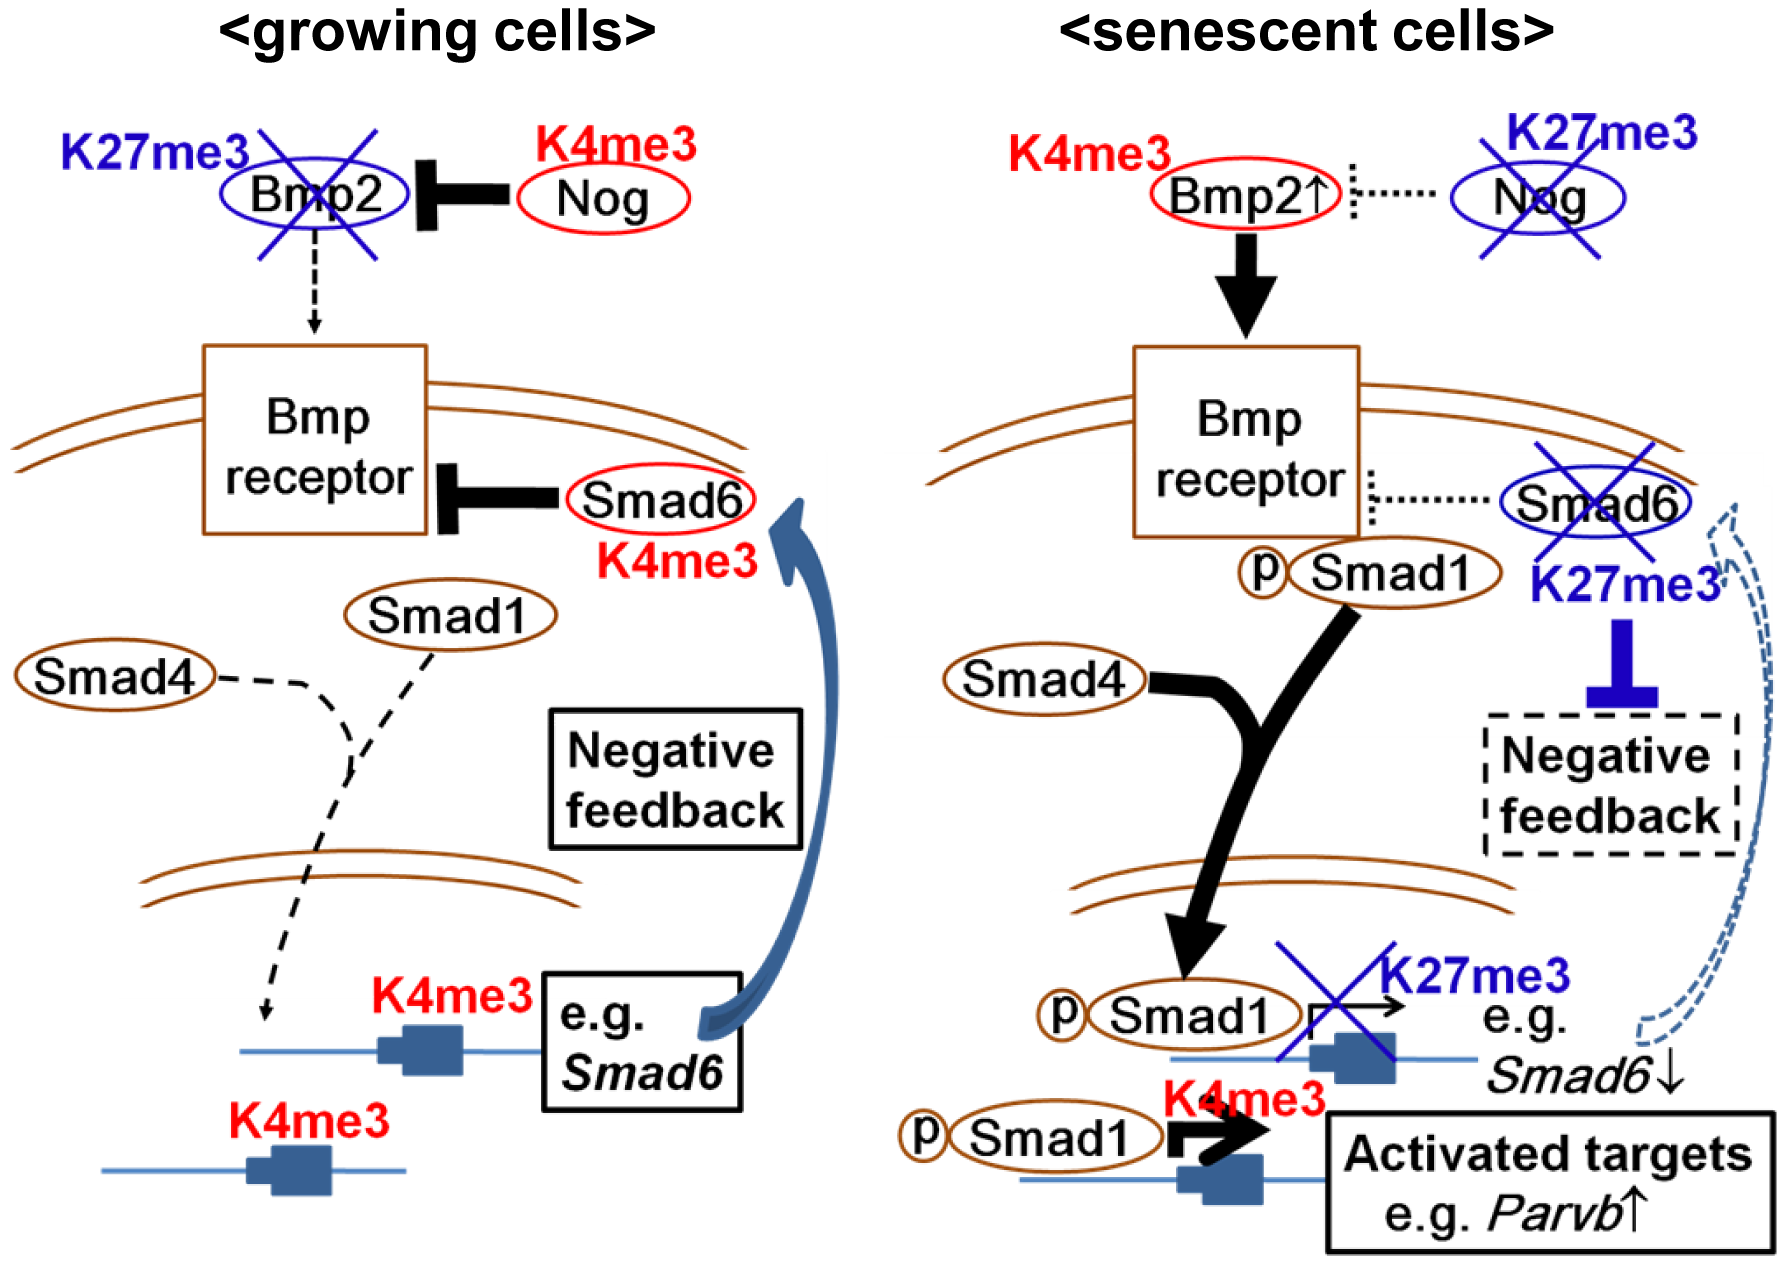 Schema of epigenetic regulation of Bmp2/Smad1 signal.